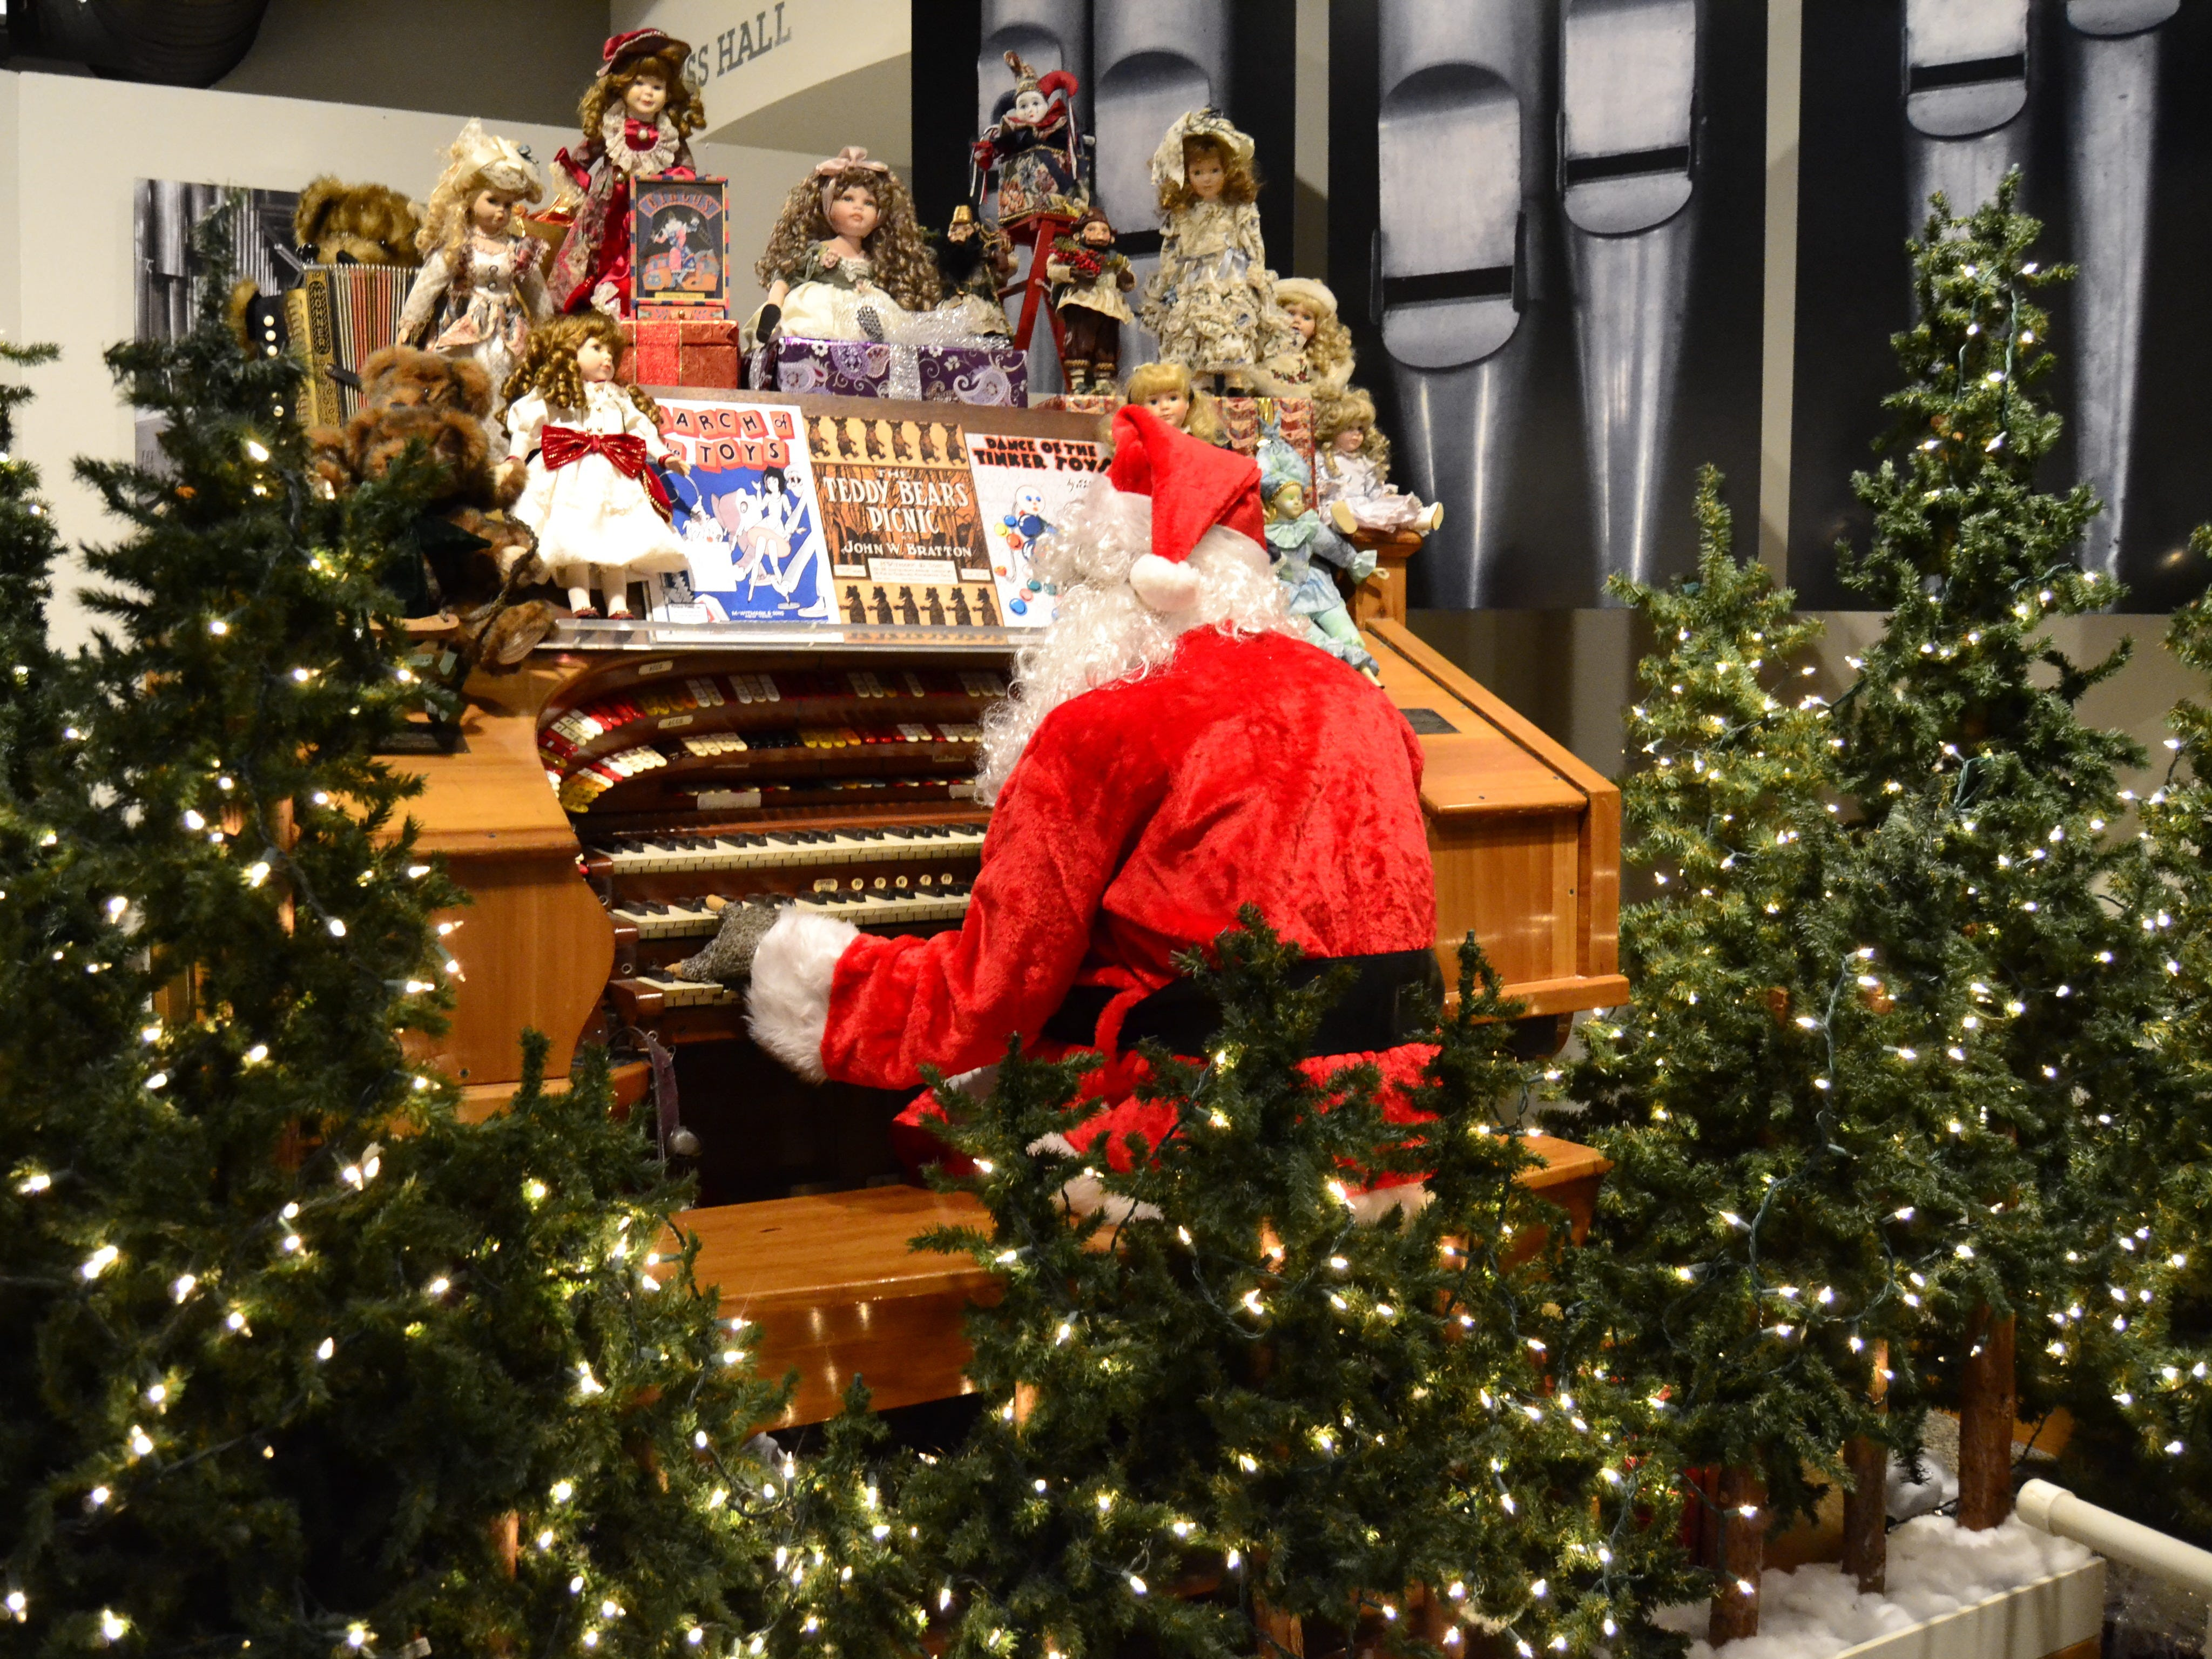 Santa Claus plays the organ in an exhibit Sunday at the Roberson Museum and Science Center in 2015.